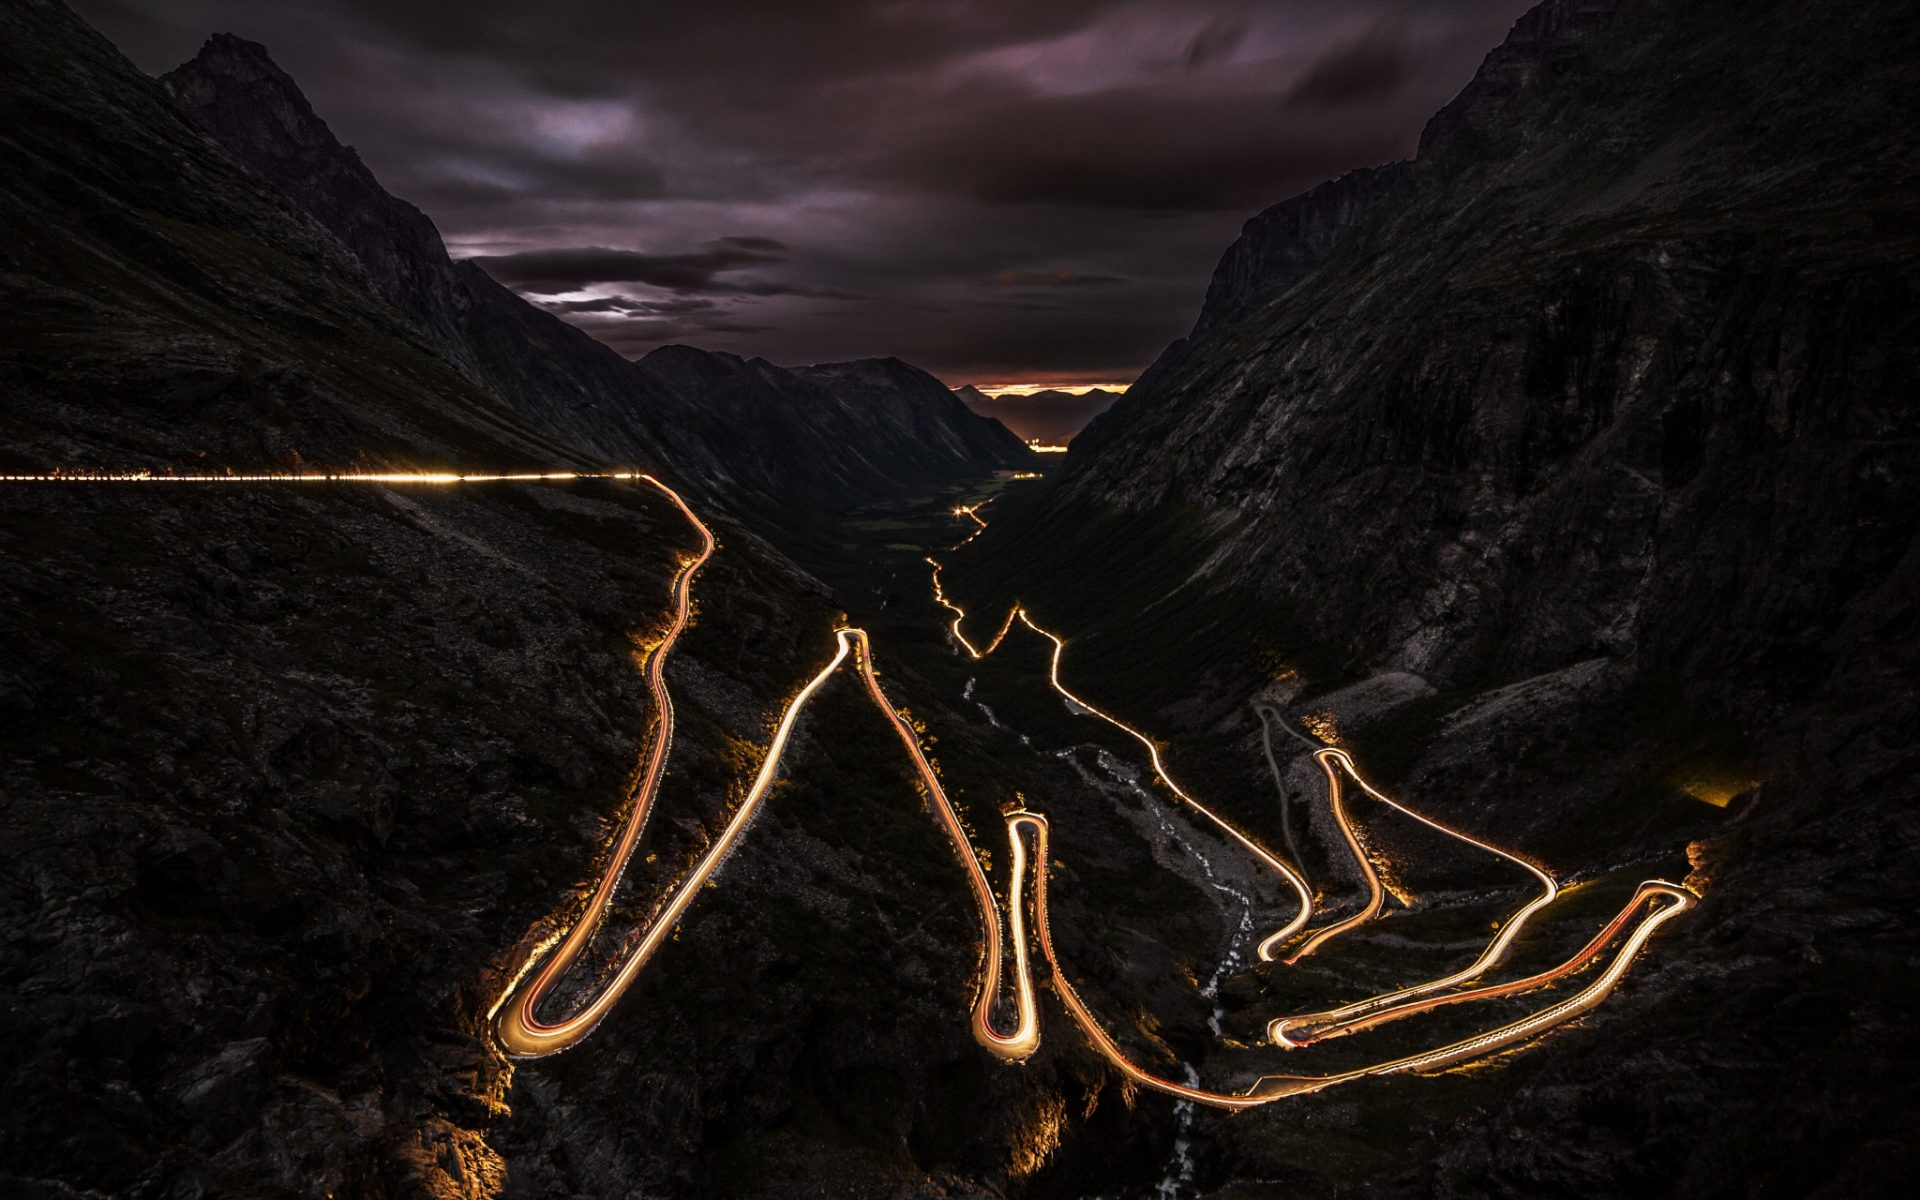 Mountain Road During Night Wallpaper